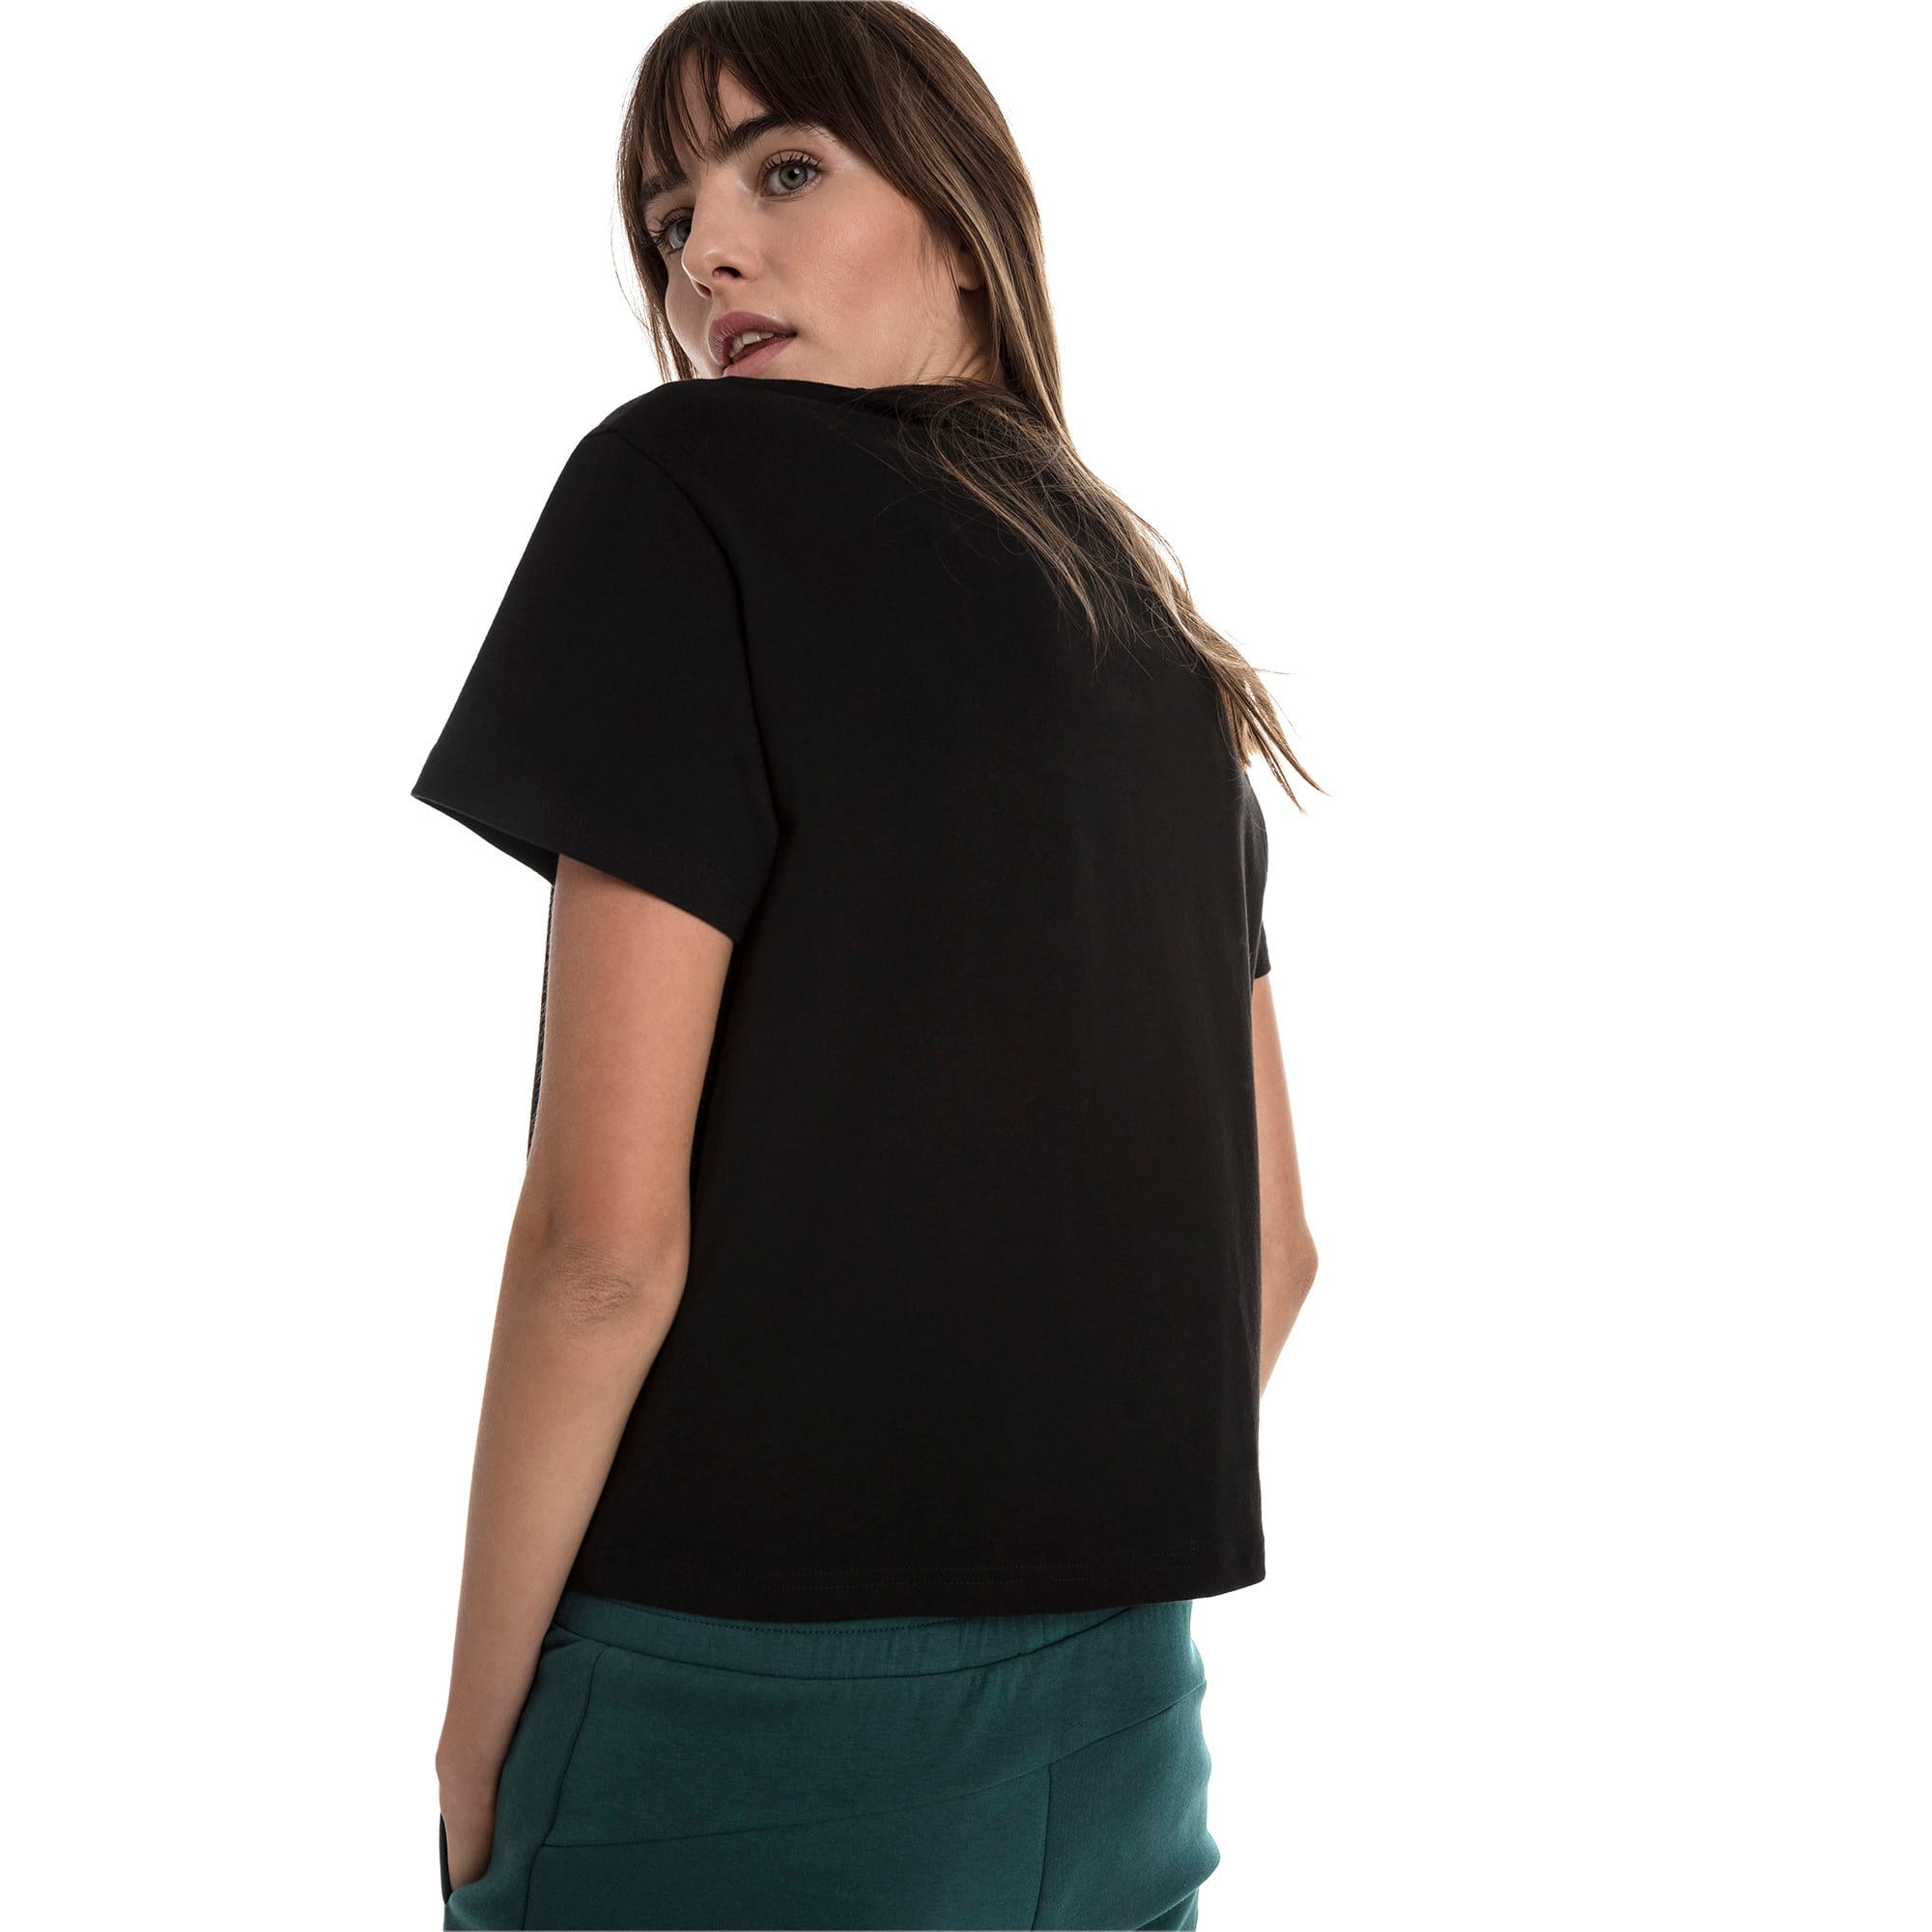 Thumbnail 2 of Evostripe Women's Tee, Cotton Black, medium